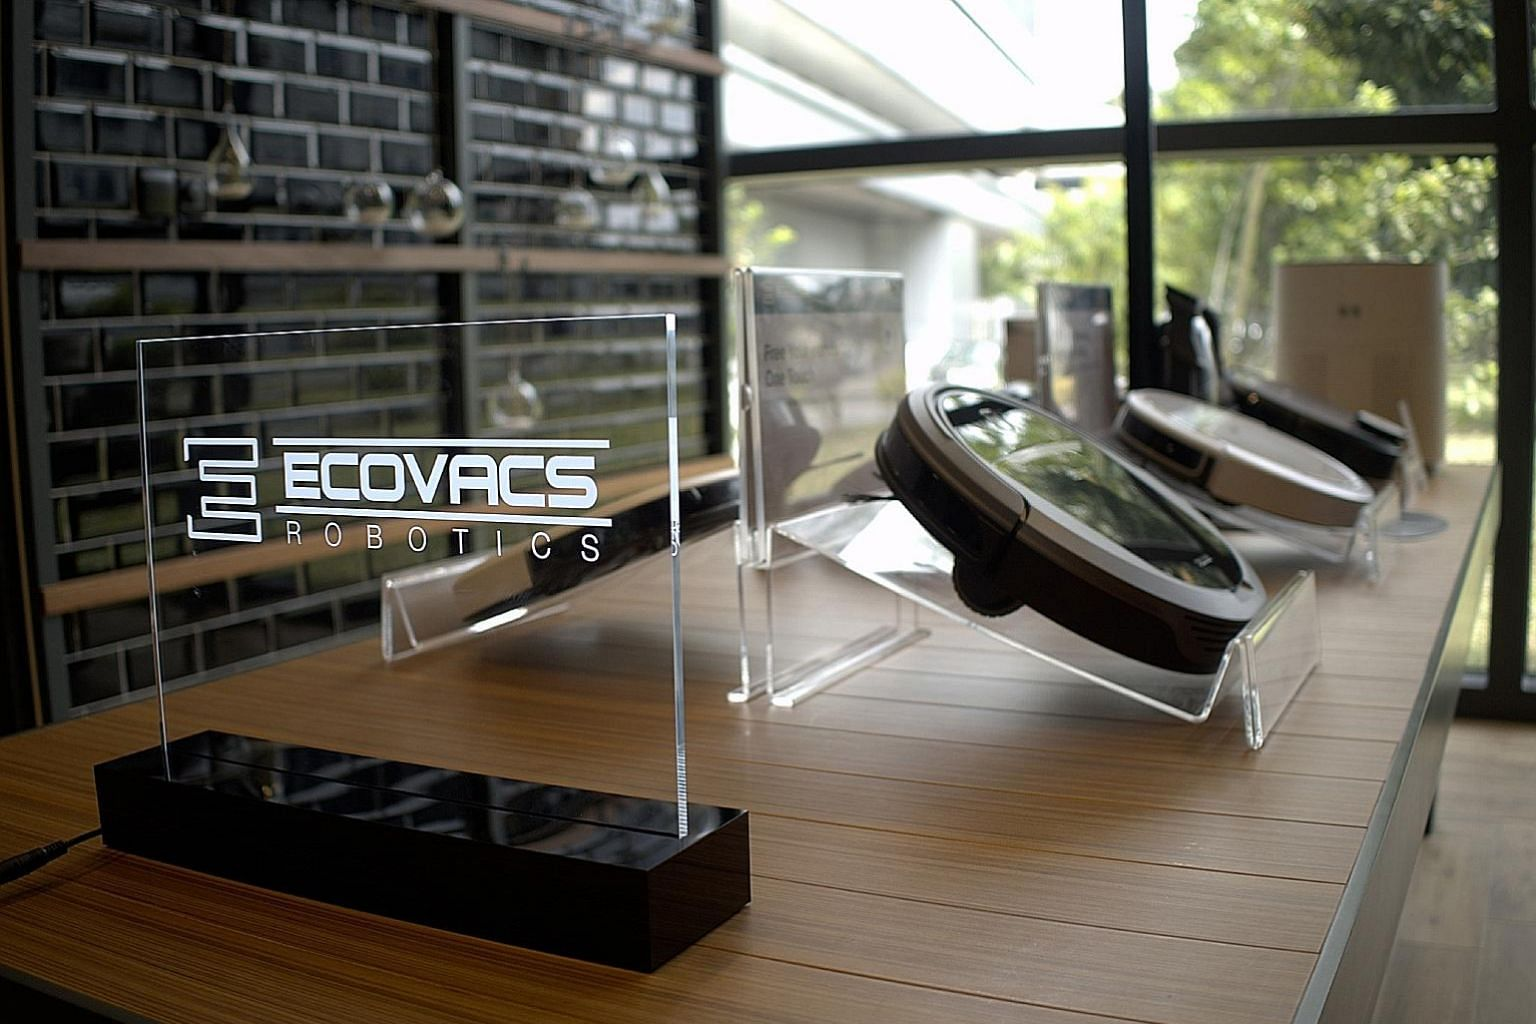 China's top maker of robot vacuum cleaners Ecovacs launched its range of products in Singapore last month.